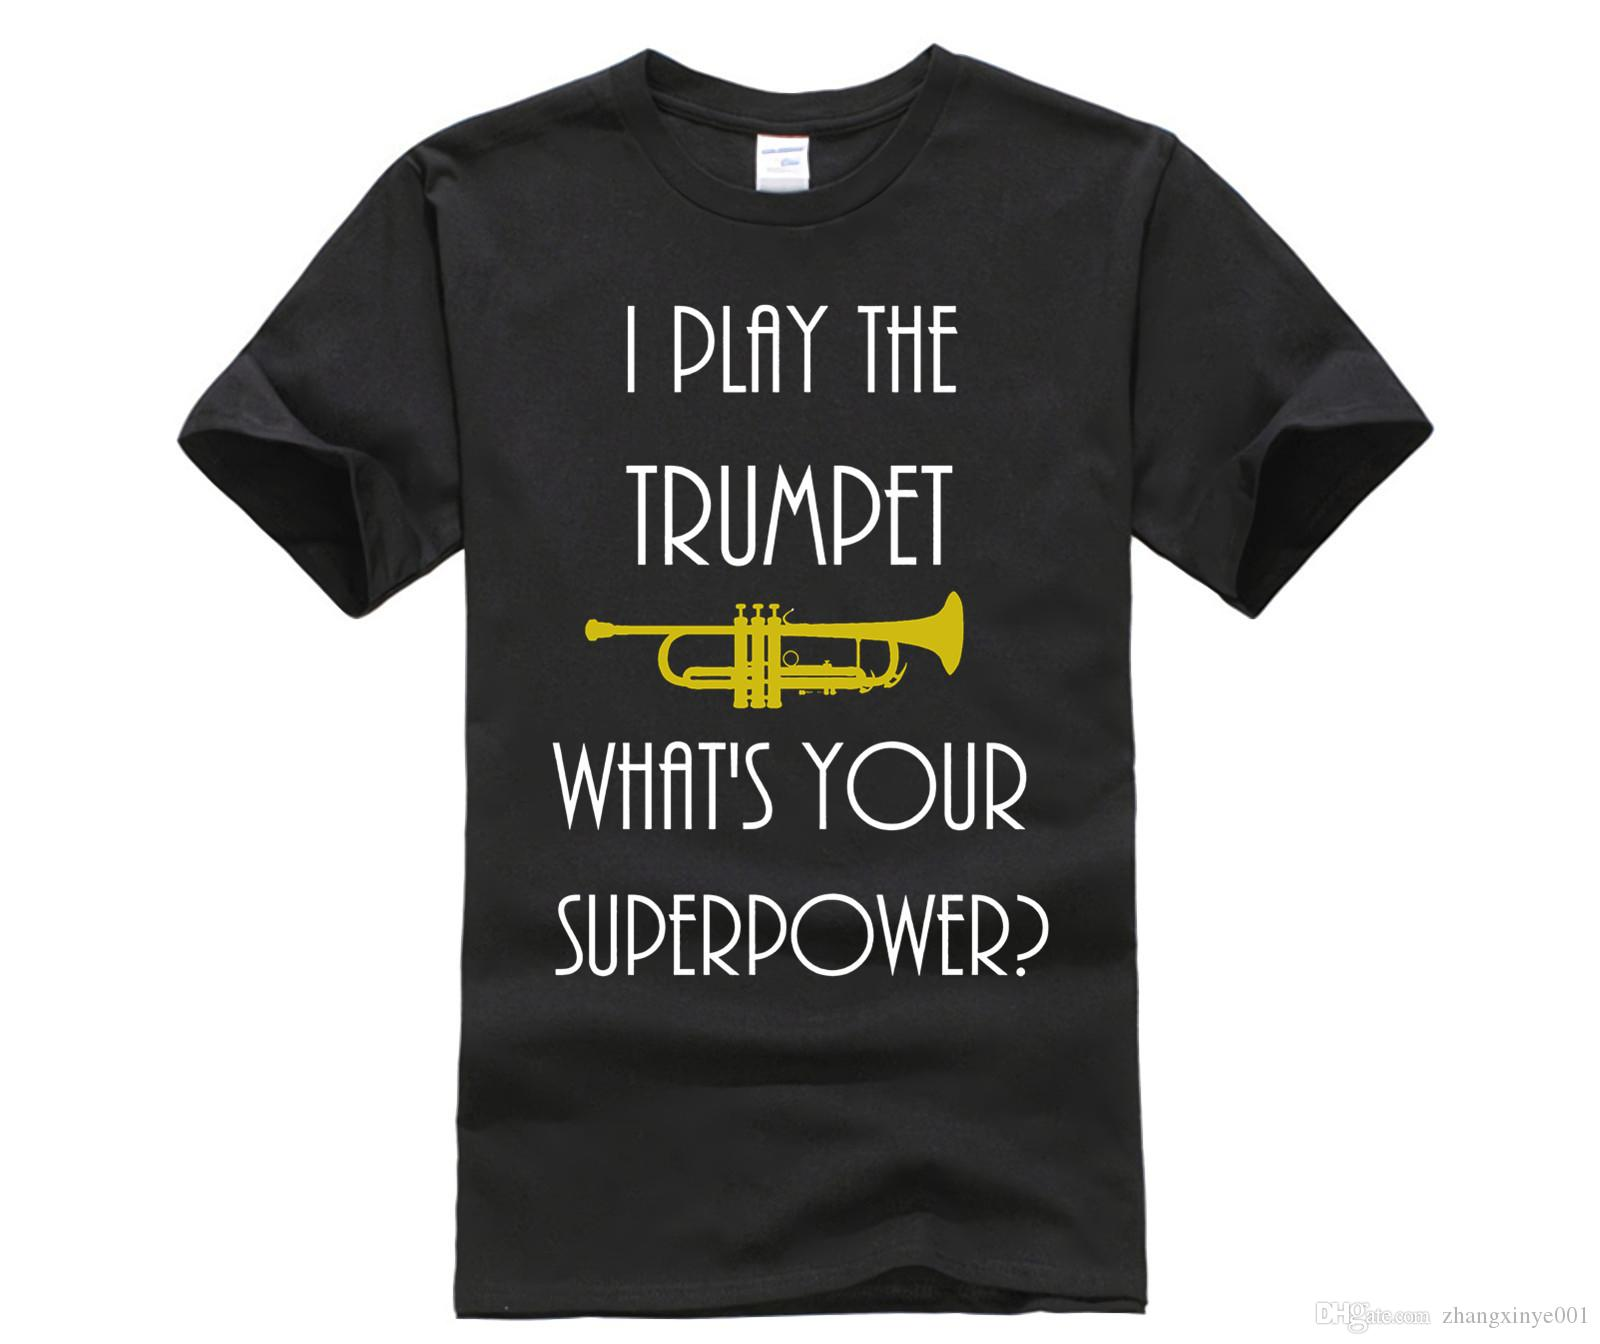 0014c2c51c Trumpet Shirt Gift For Trumpet Player Funny Trumpet Shirt Tee Shirt Deals  Online Shopping Tee Shirts From Zhangxinye001, $14.21| DHgate.Com